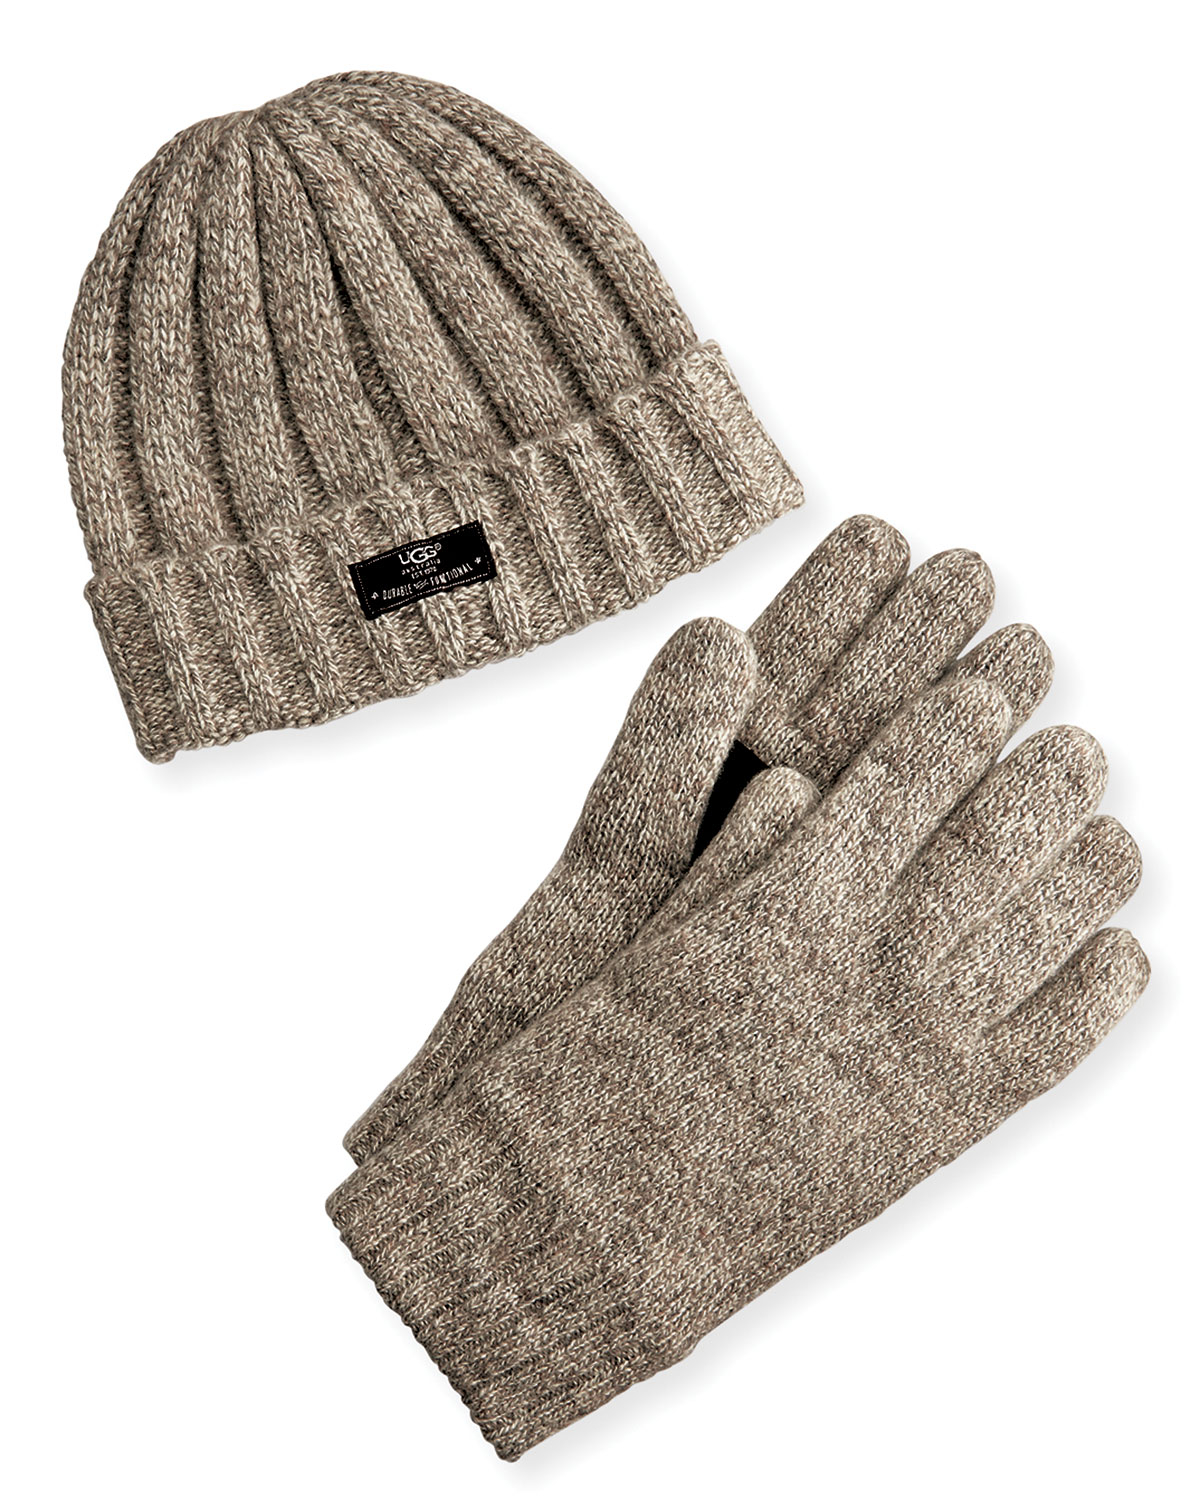 Lyst - UGG Men s Hat And Glove Box Set in Natural for Men 5023c6b2534